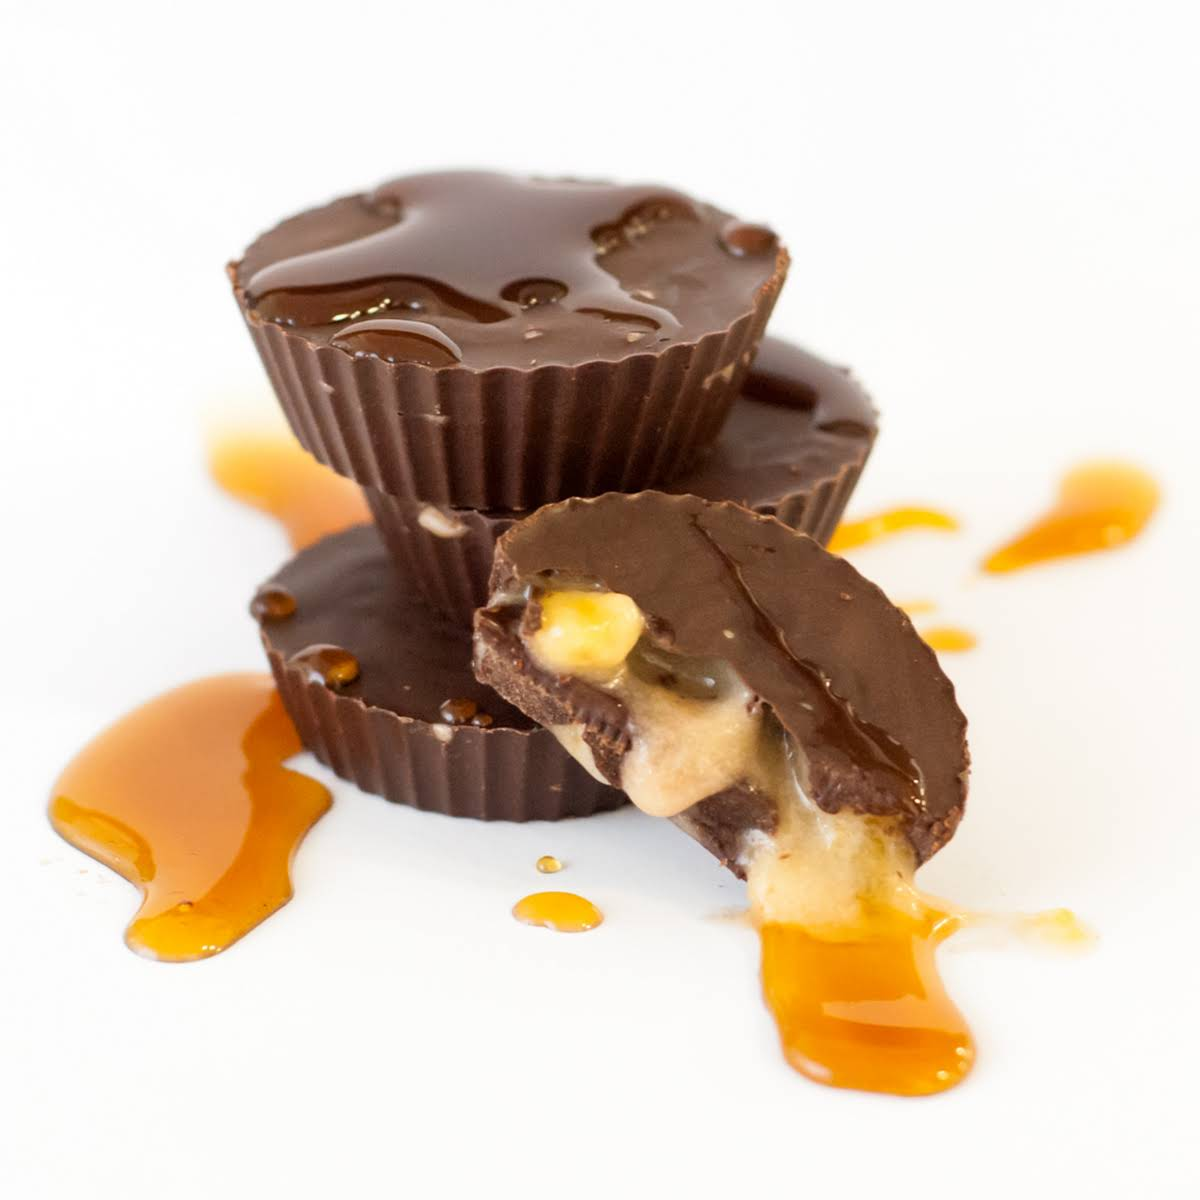 Salted Caramel Banana Protein Cups